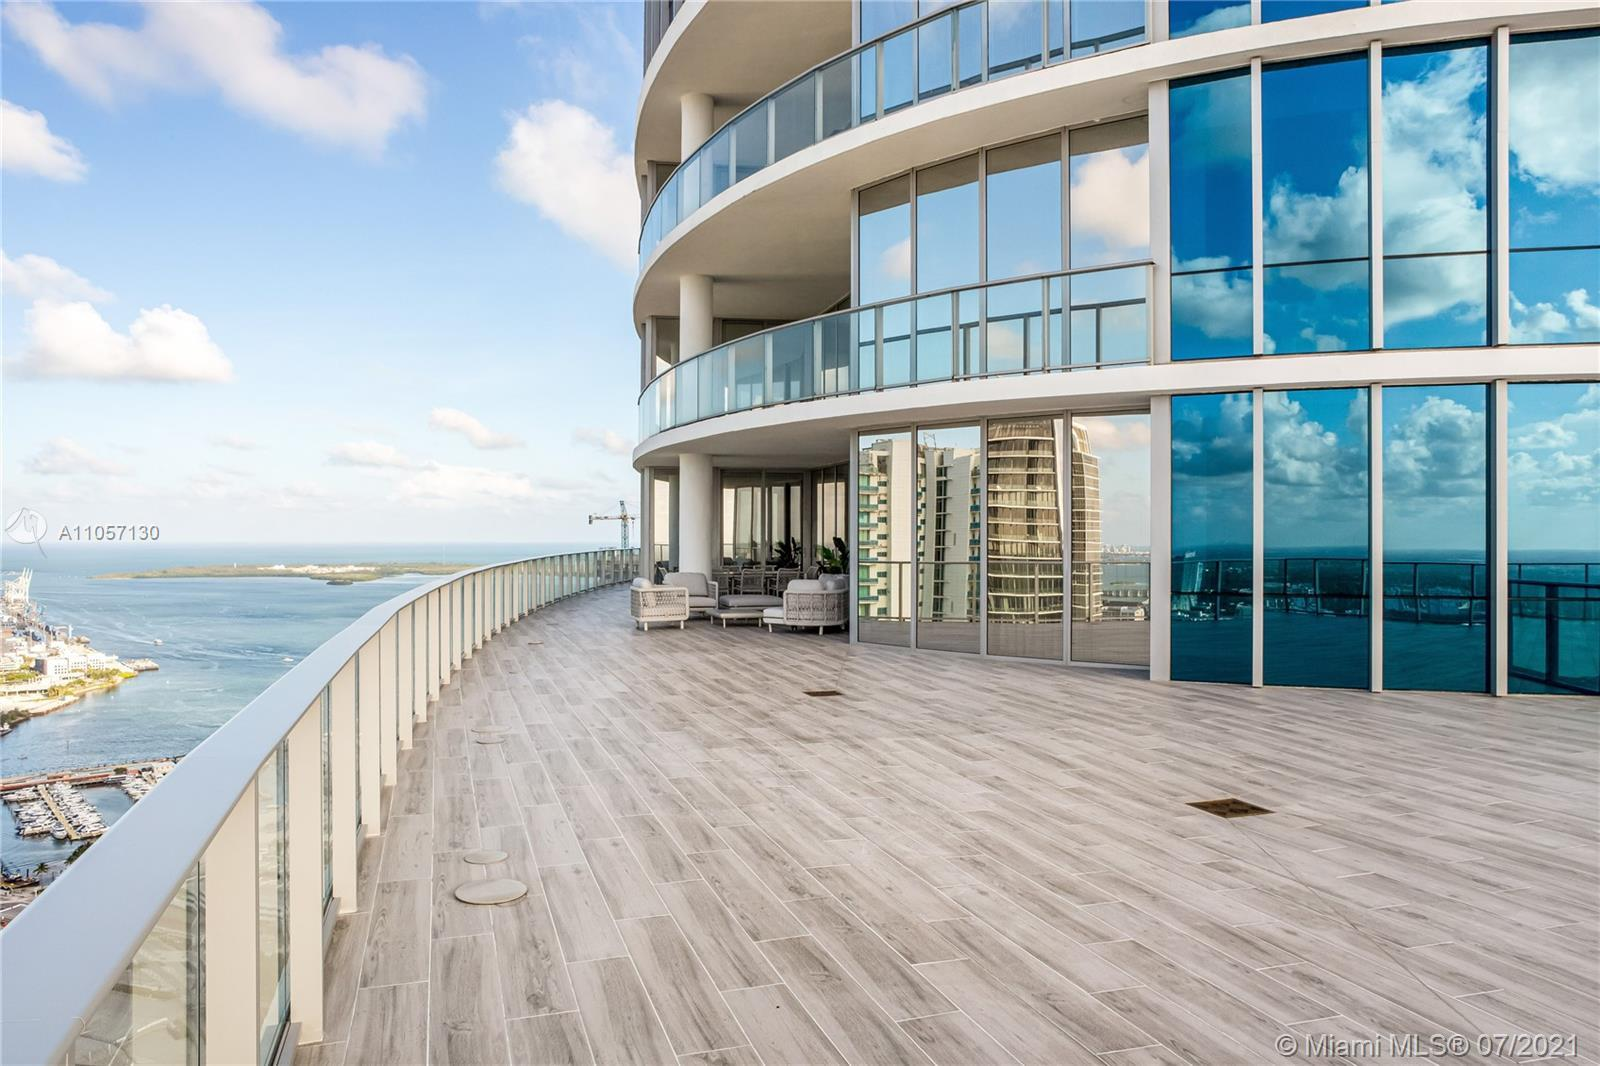 Stunning Penthouse with 4 Bedrooms plus Den and 5 bathrooms. Fully furnished by famous interior desi